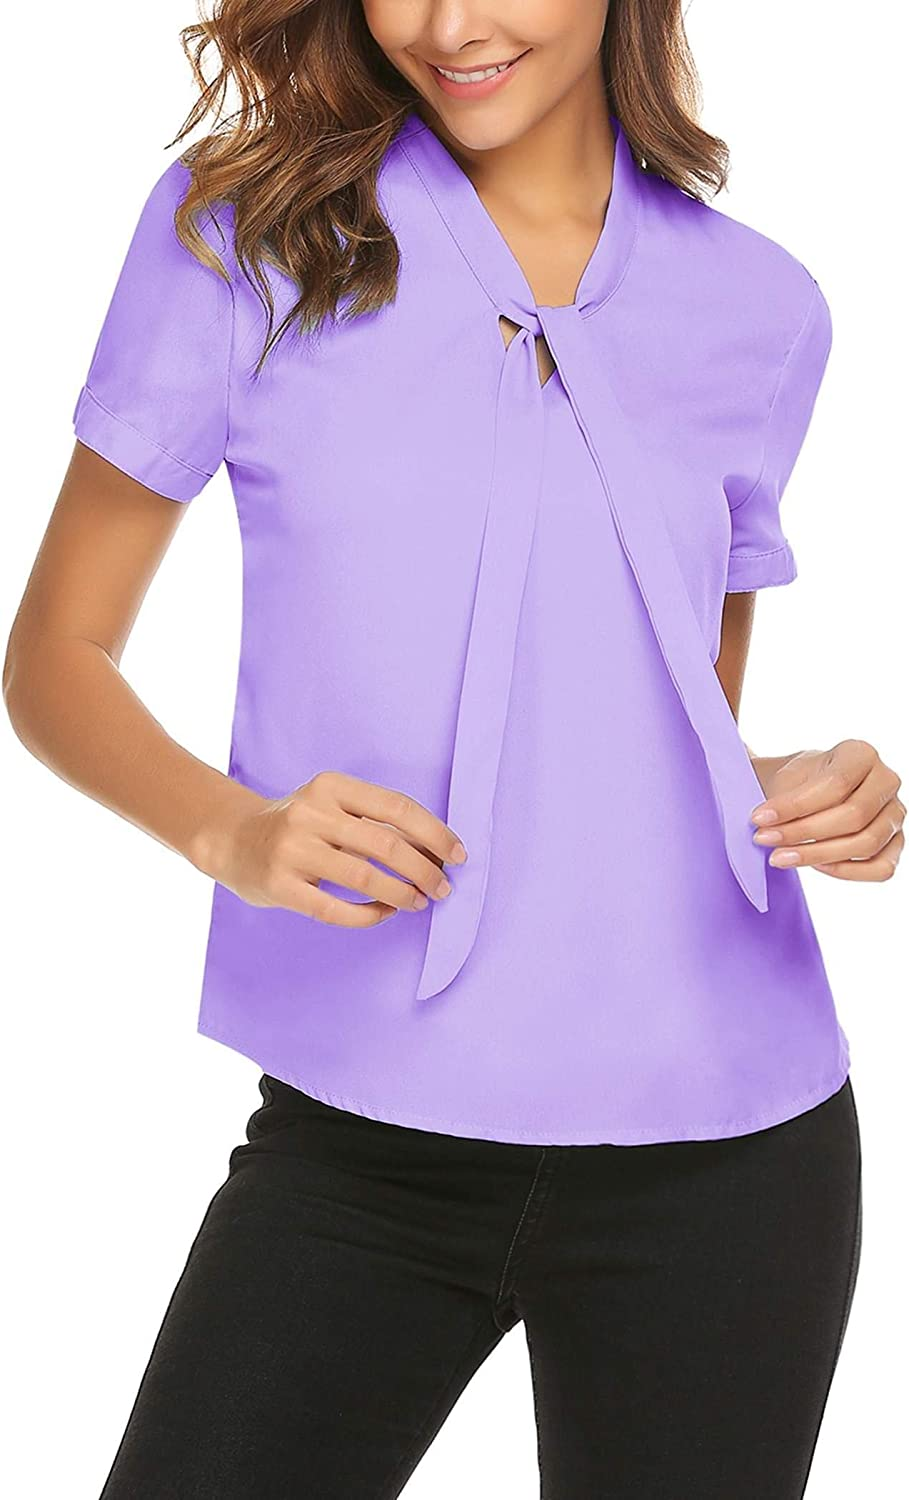 ACEVOG Womens Blouse Short Sleeve Chiffon Shirts Bow Tie Neck Business Tops Breathable Summer Shirts for Women Work Wear